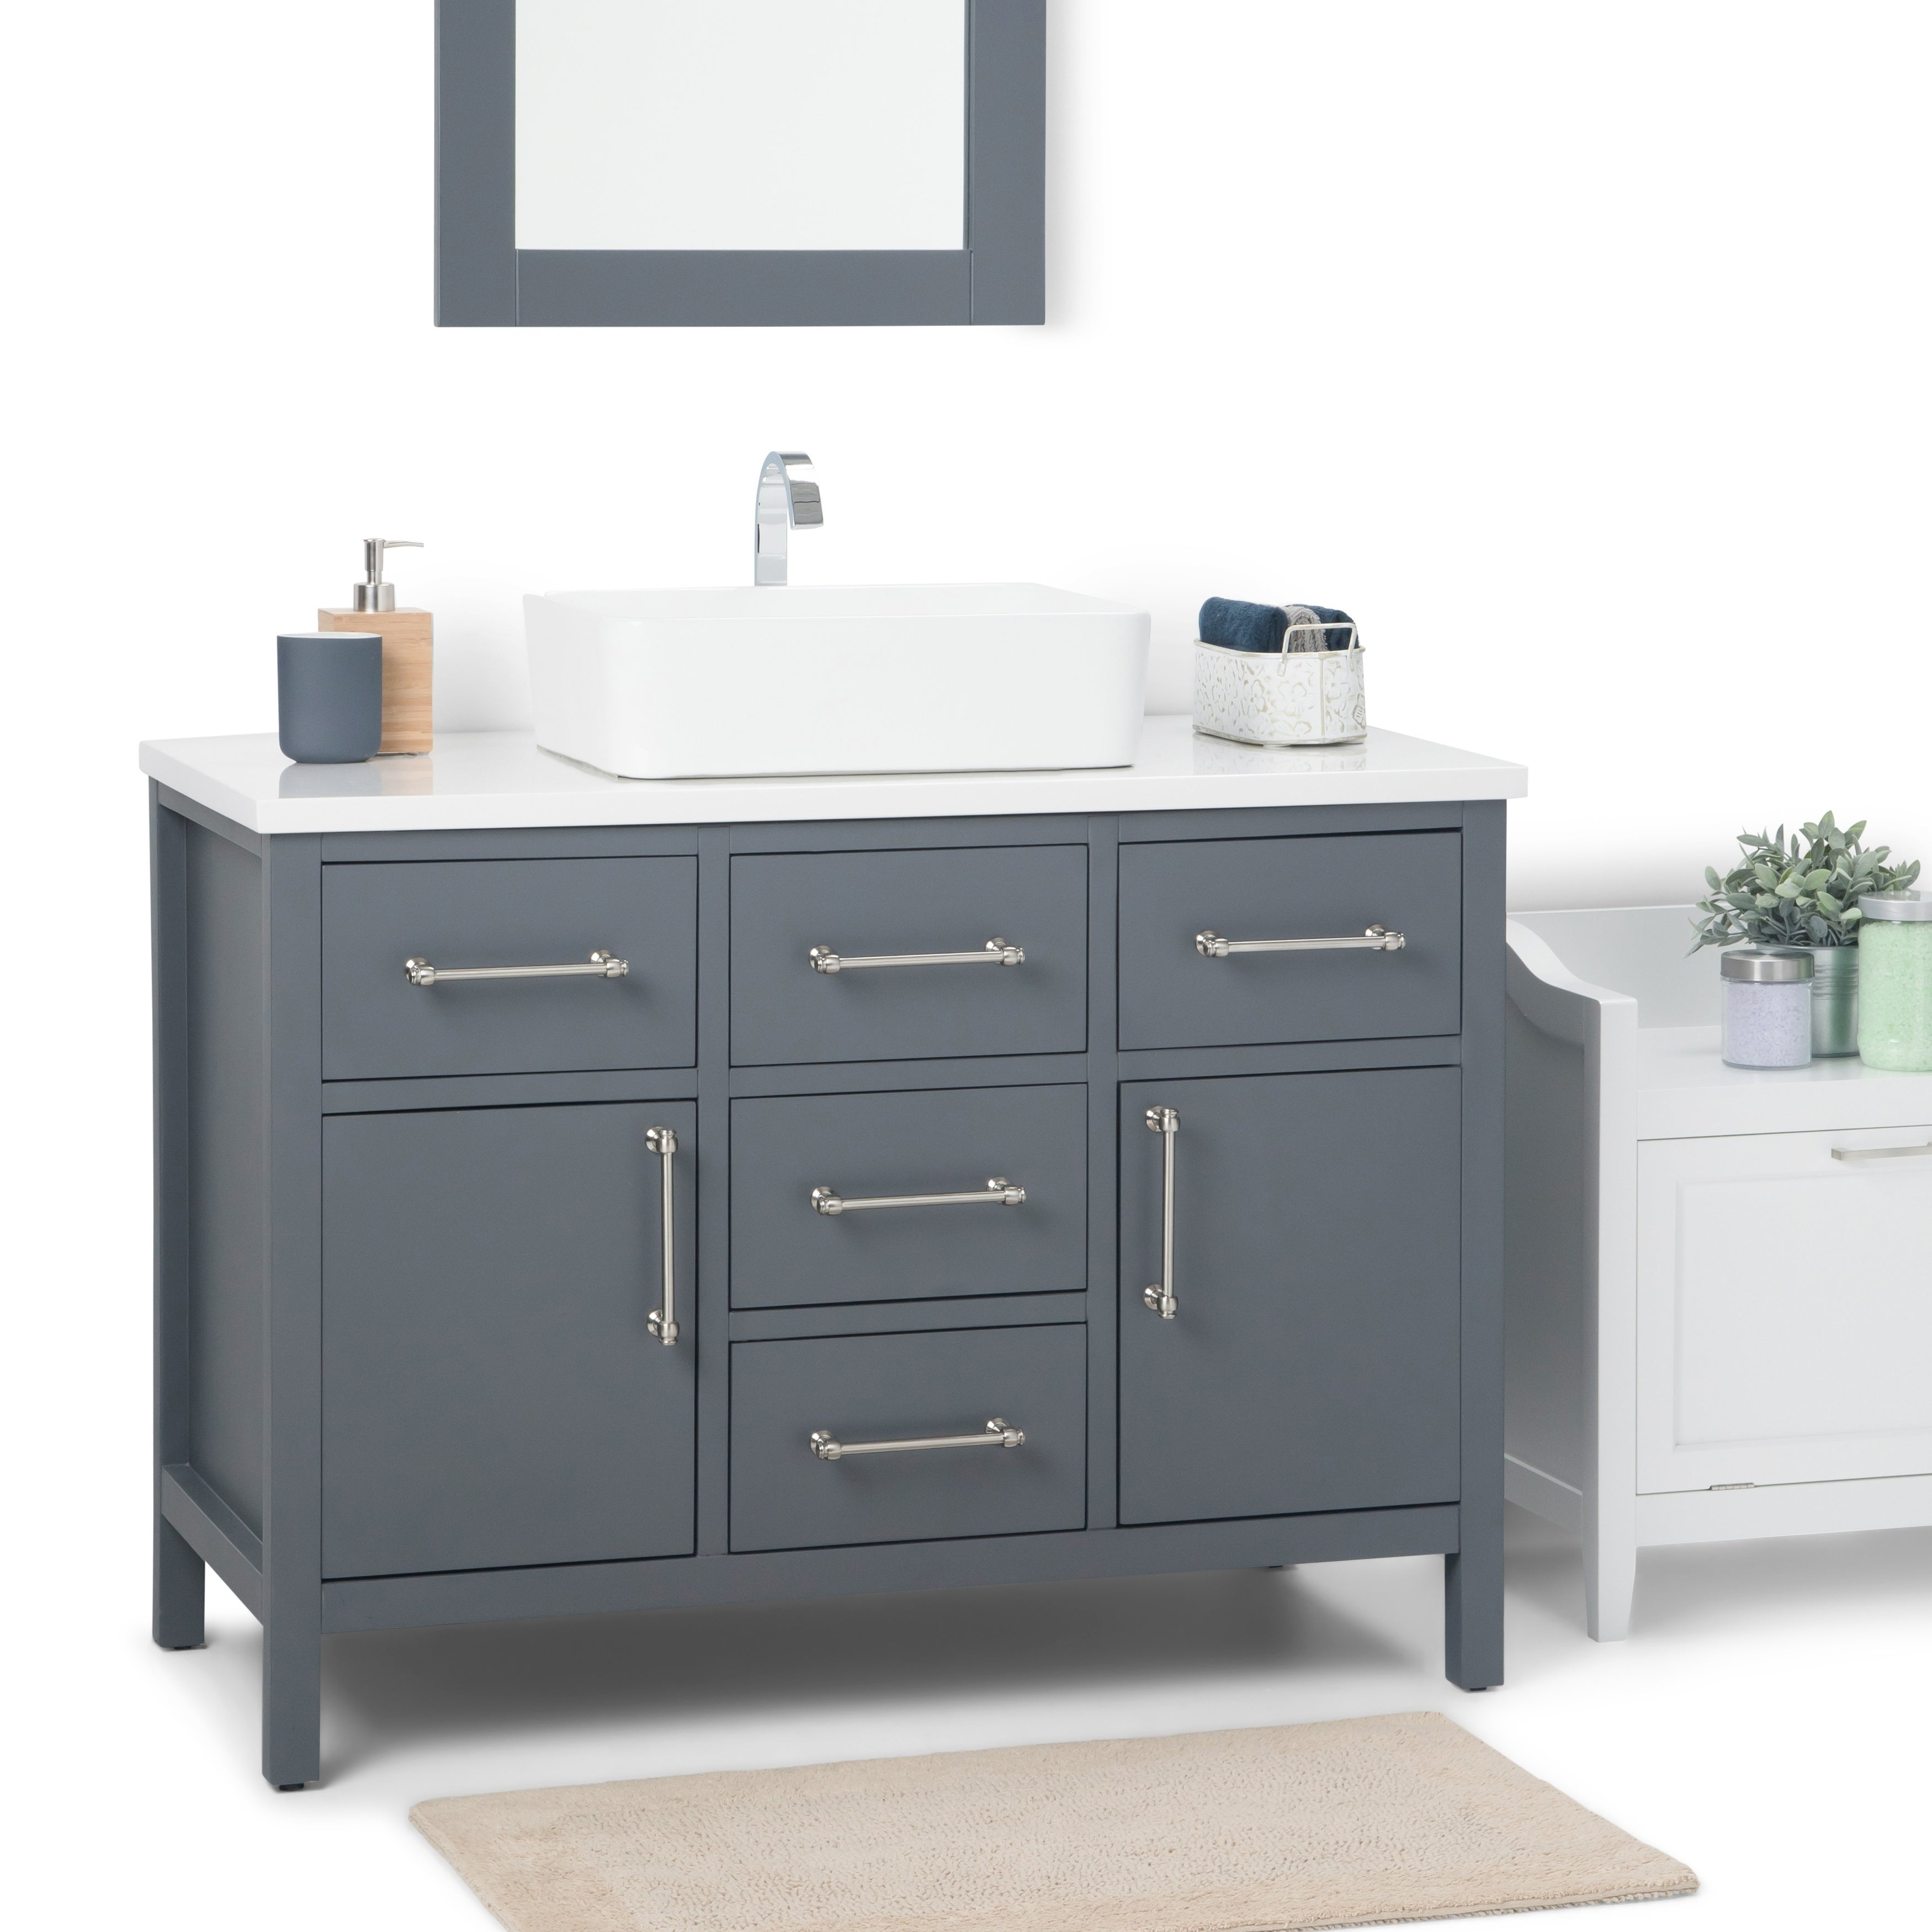 42 Inch Bathroom Vanity | Shop Wyndenhall Farley 42 Inch Modern Bath Vanity With White